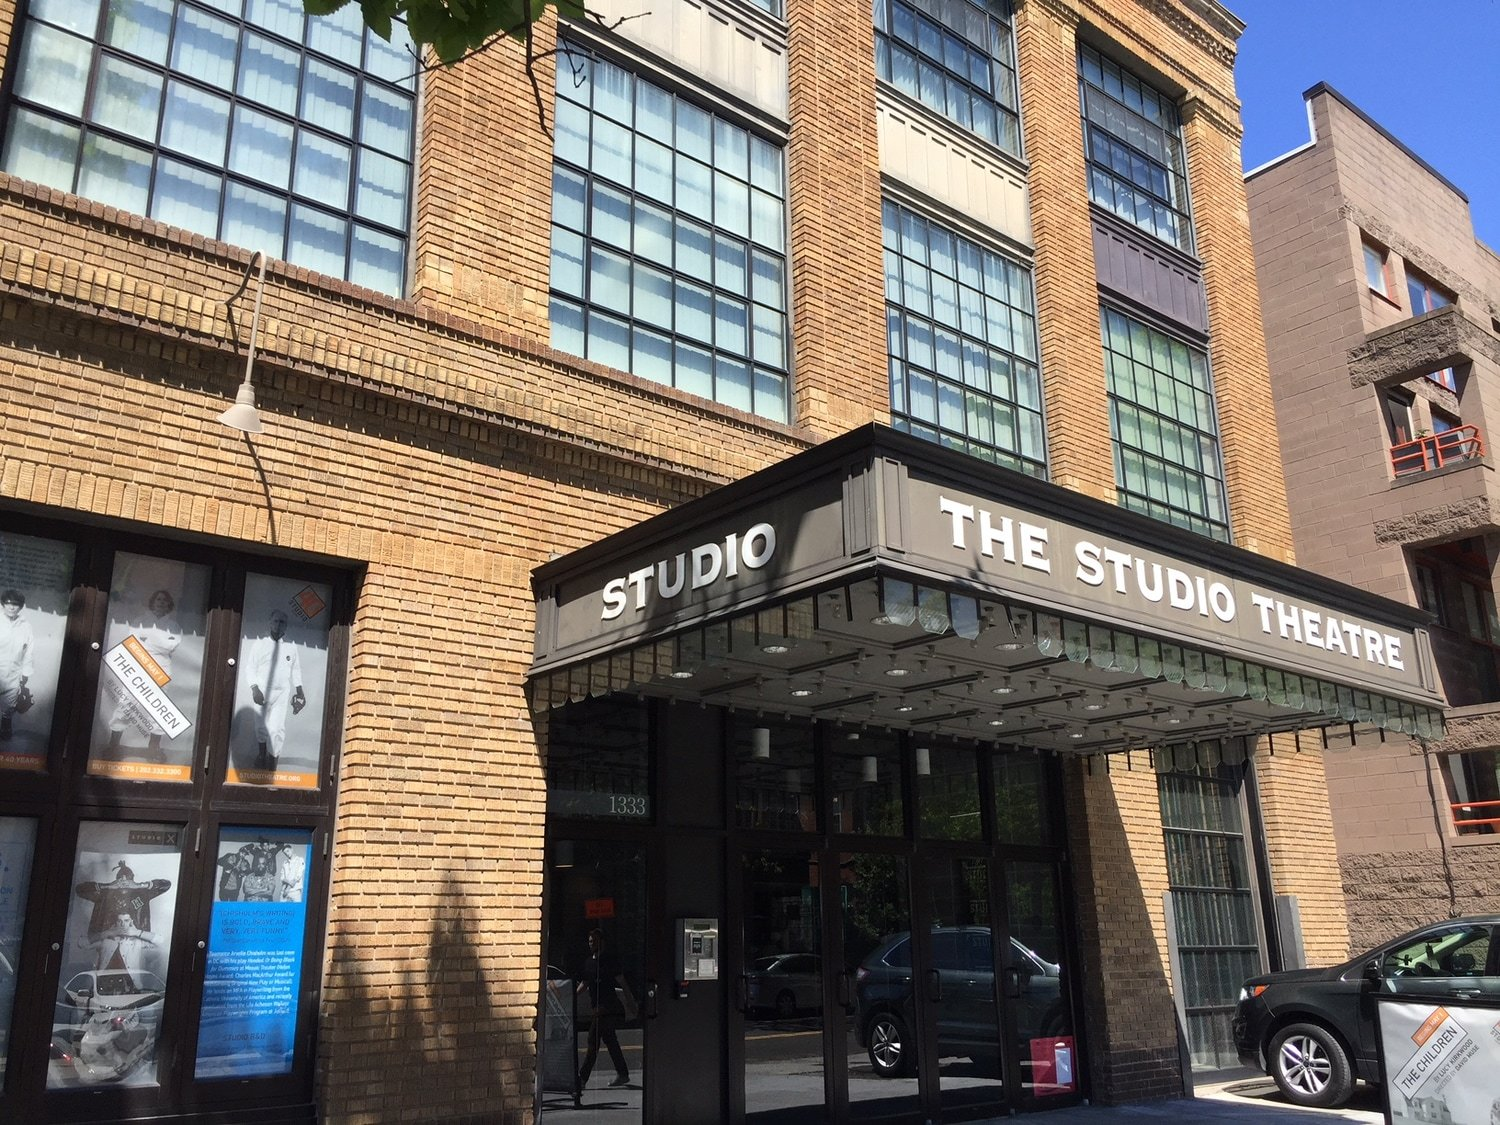 The Studio Theatre Entrance - Logan Circle - Wahington, DC